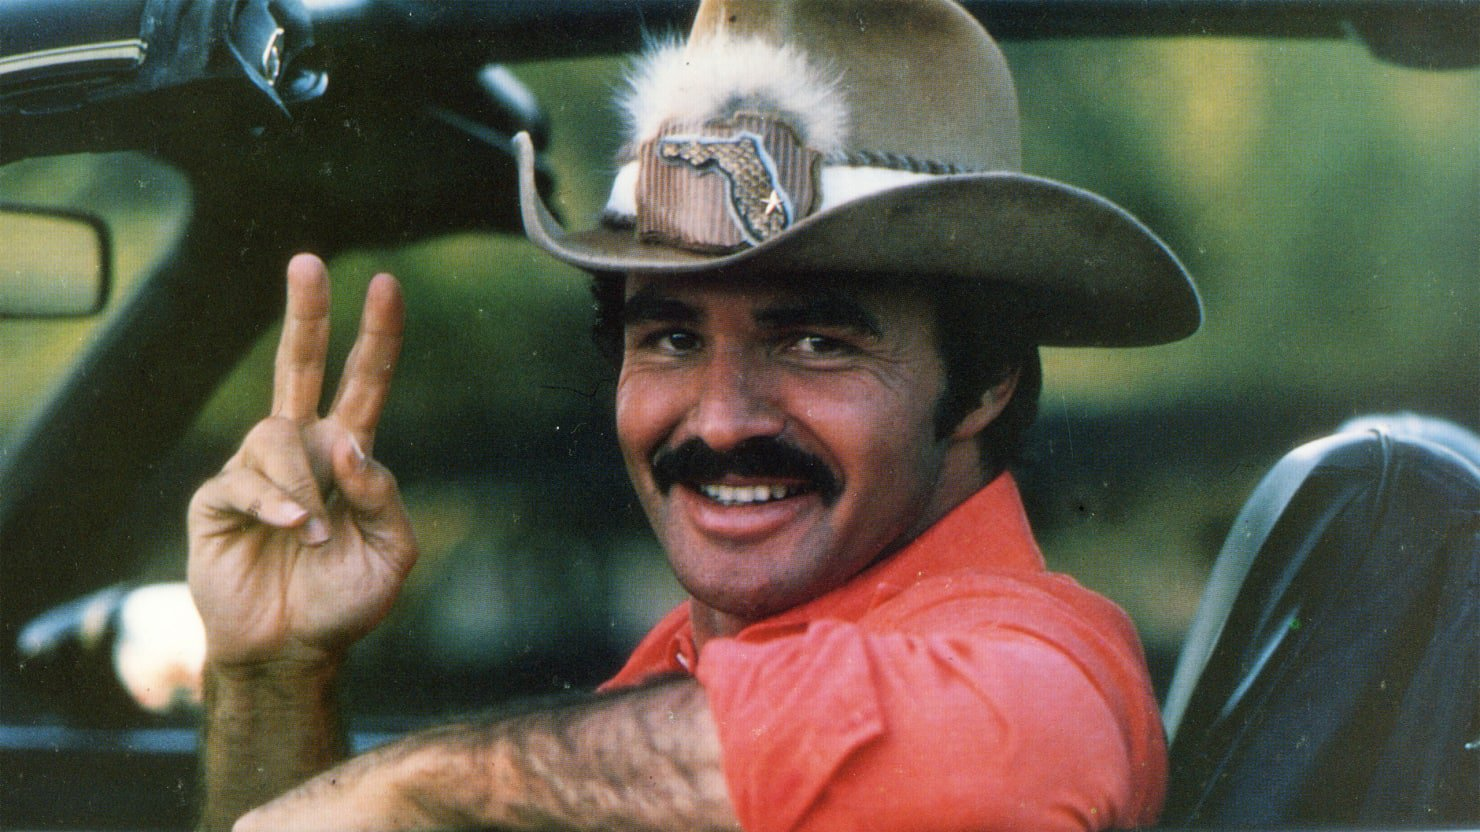 Happy Birthday to Burt Reynolds, who turns 82 today!